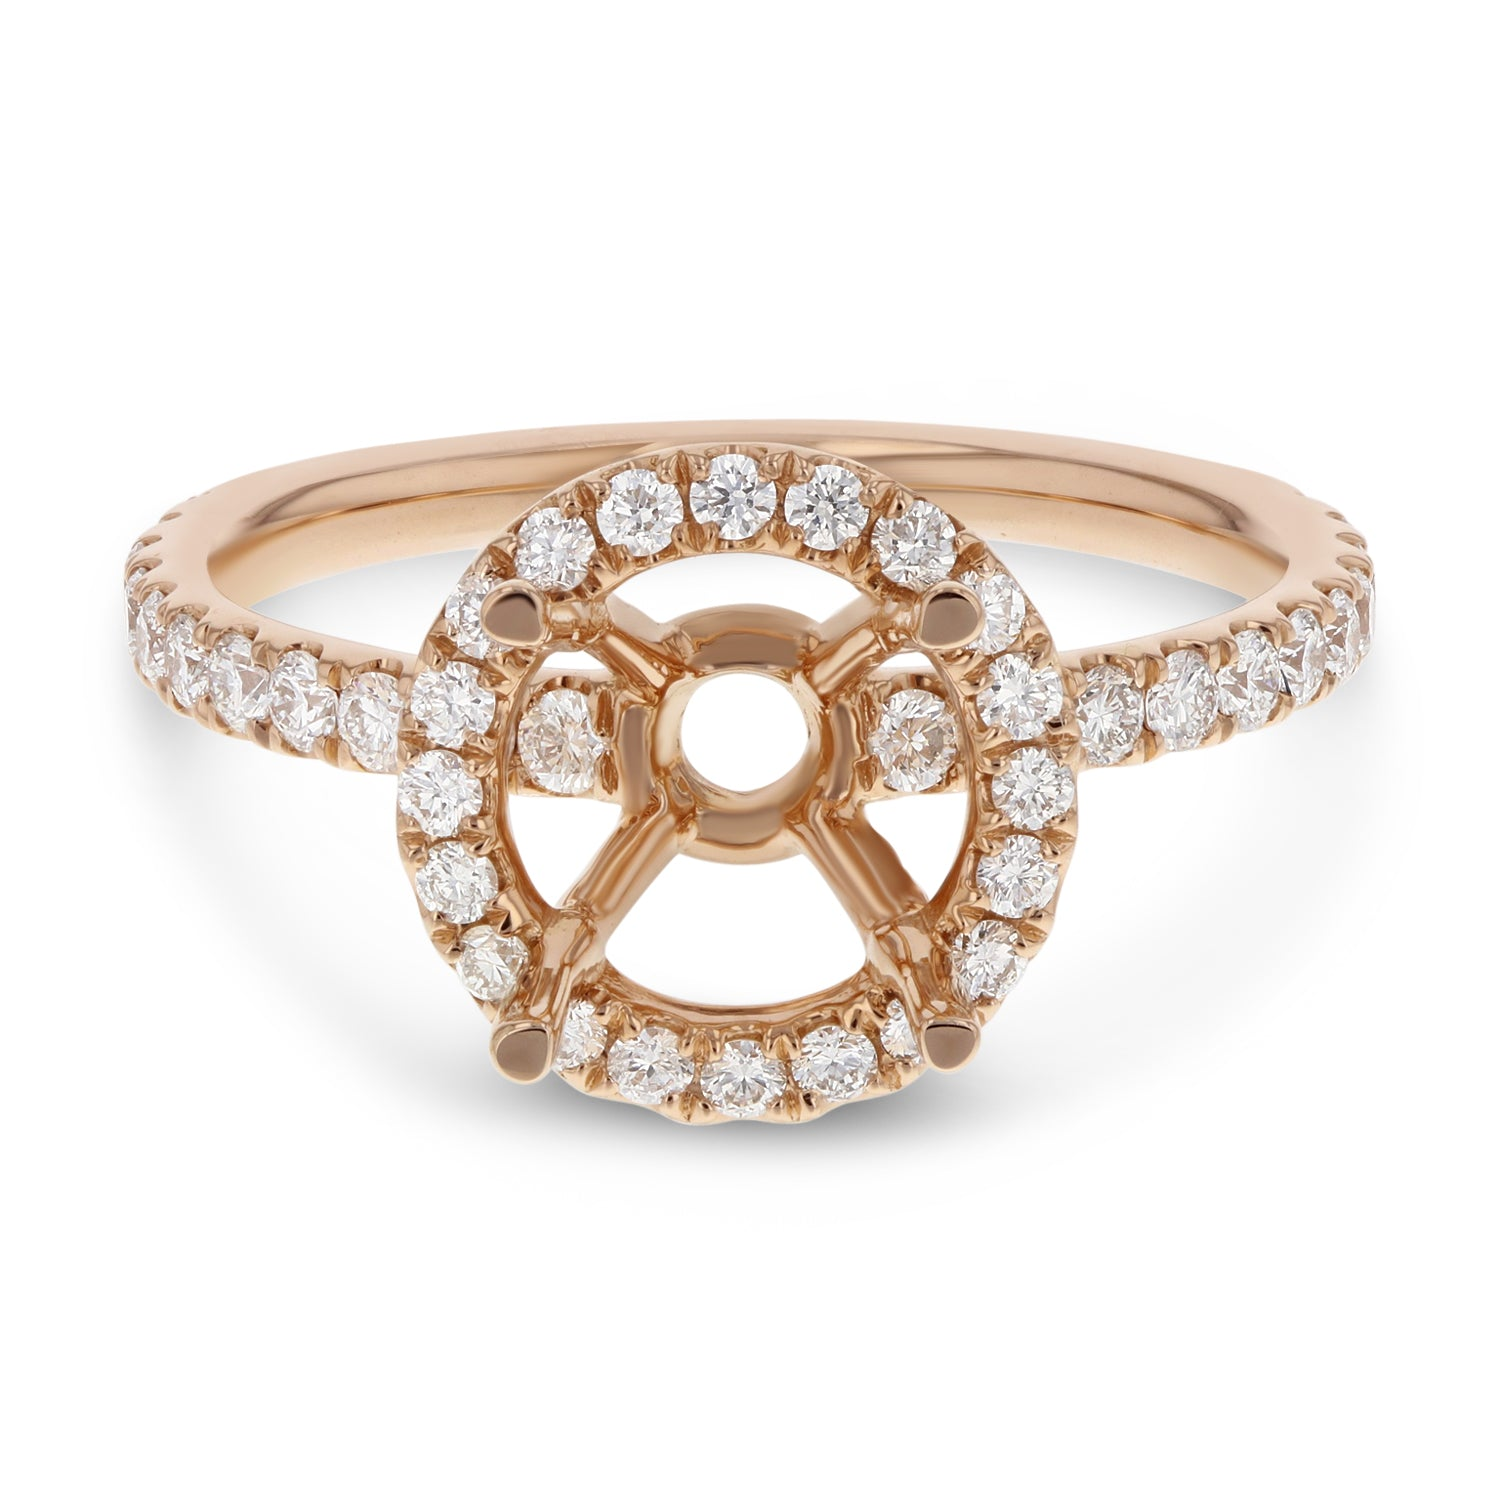 18K Rose Gold Semi-mount Ring, 0.64 Carats